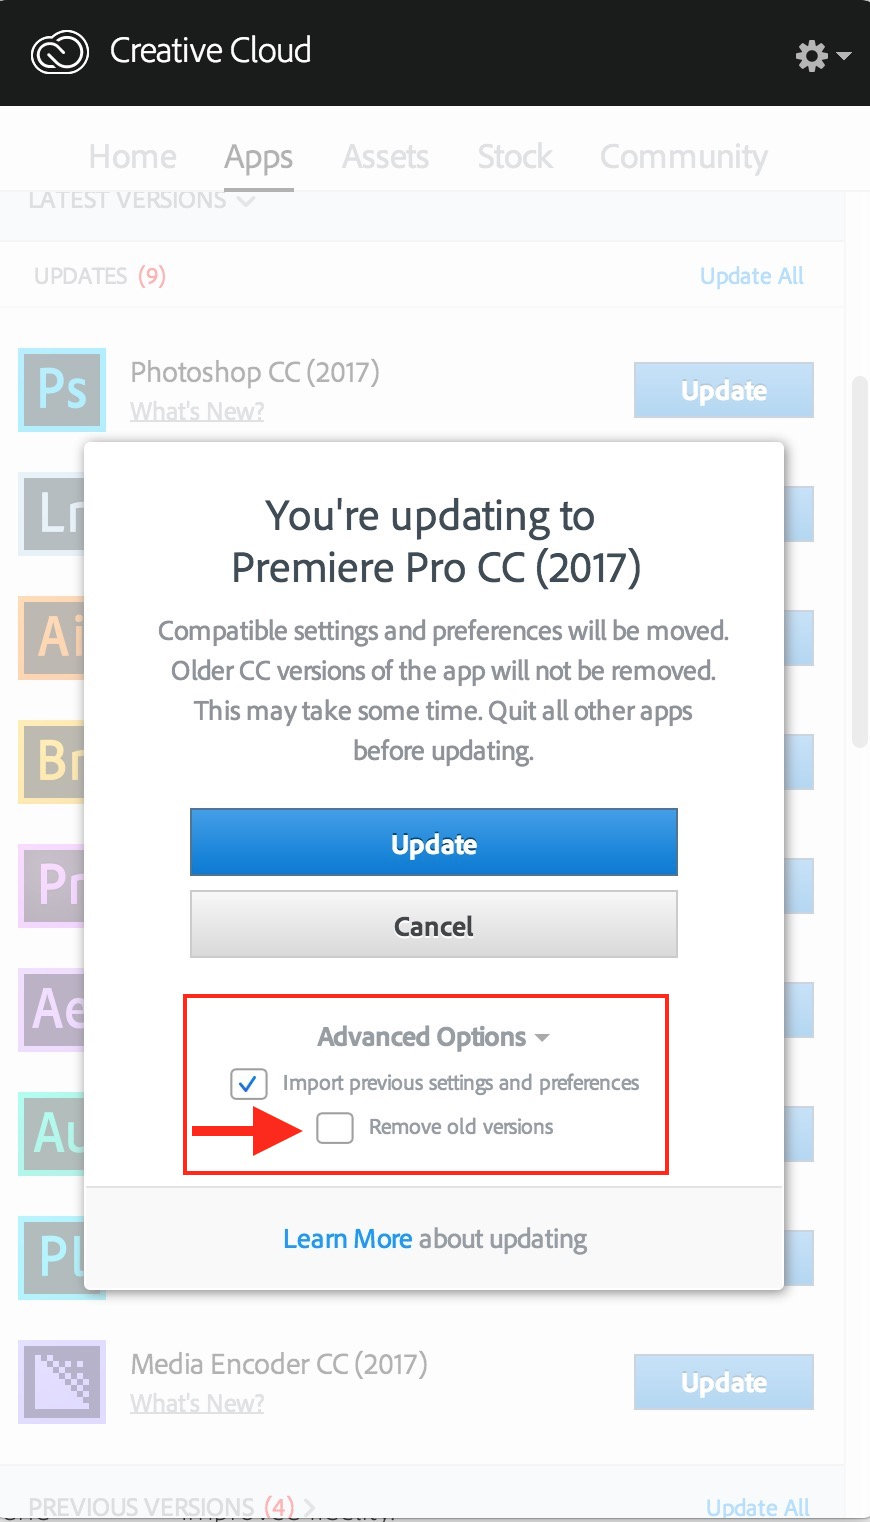 I always leave the old version of PPro behind. Old versions of the app can't open new projects.